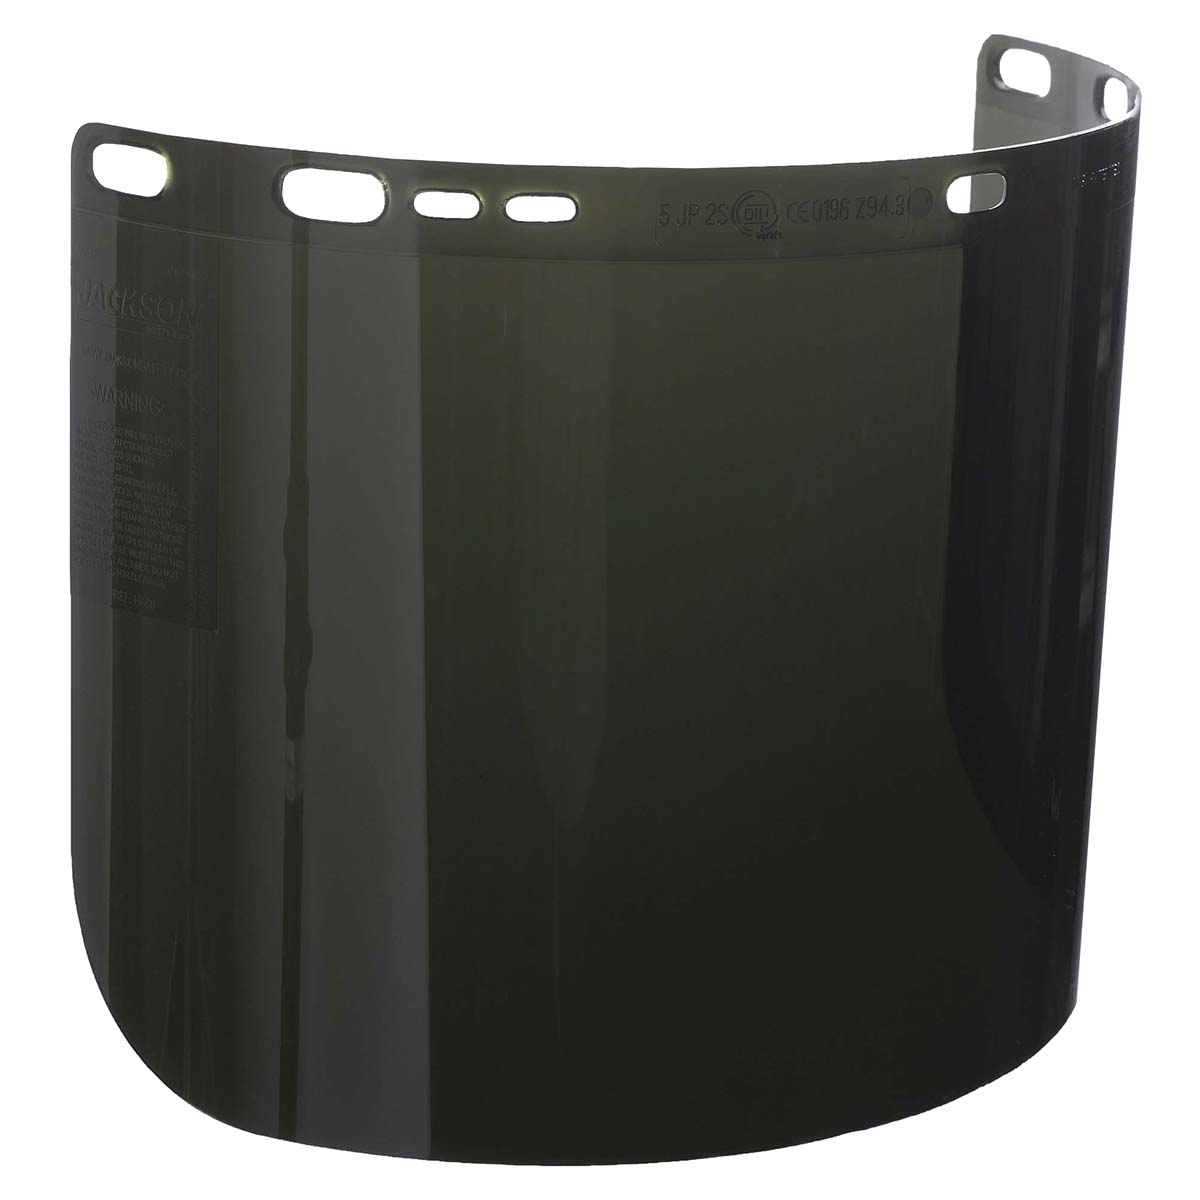 """Jackson Safety F50 Specialty High Impact Face Shield (28633), Polycarbonate, 8"""" x 15.5"""" x 0.06"""", IRUV 5.0, Face Protection, Unbound, 50 Shields / Case"""